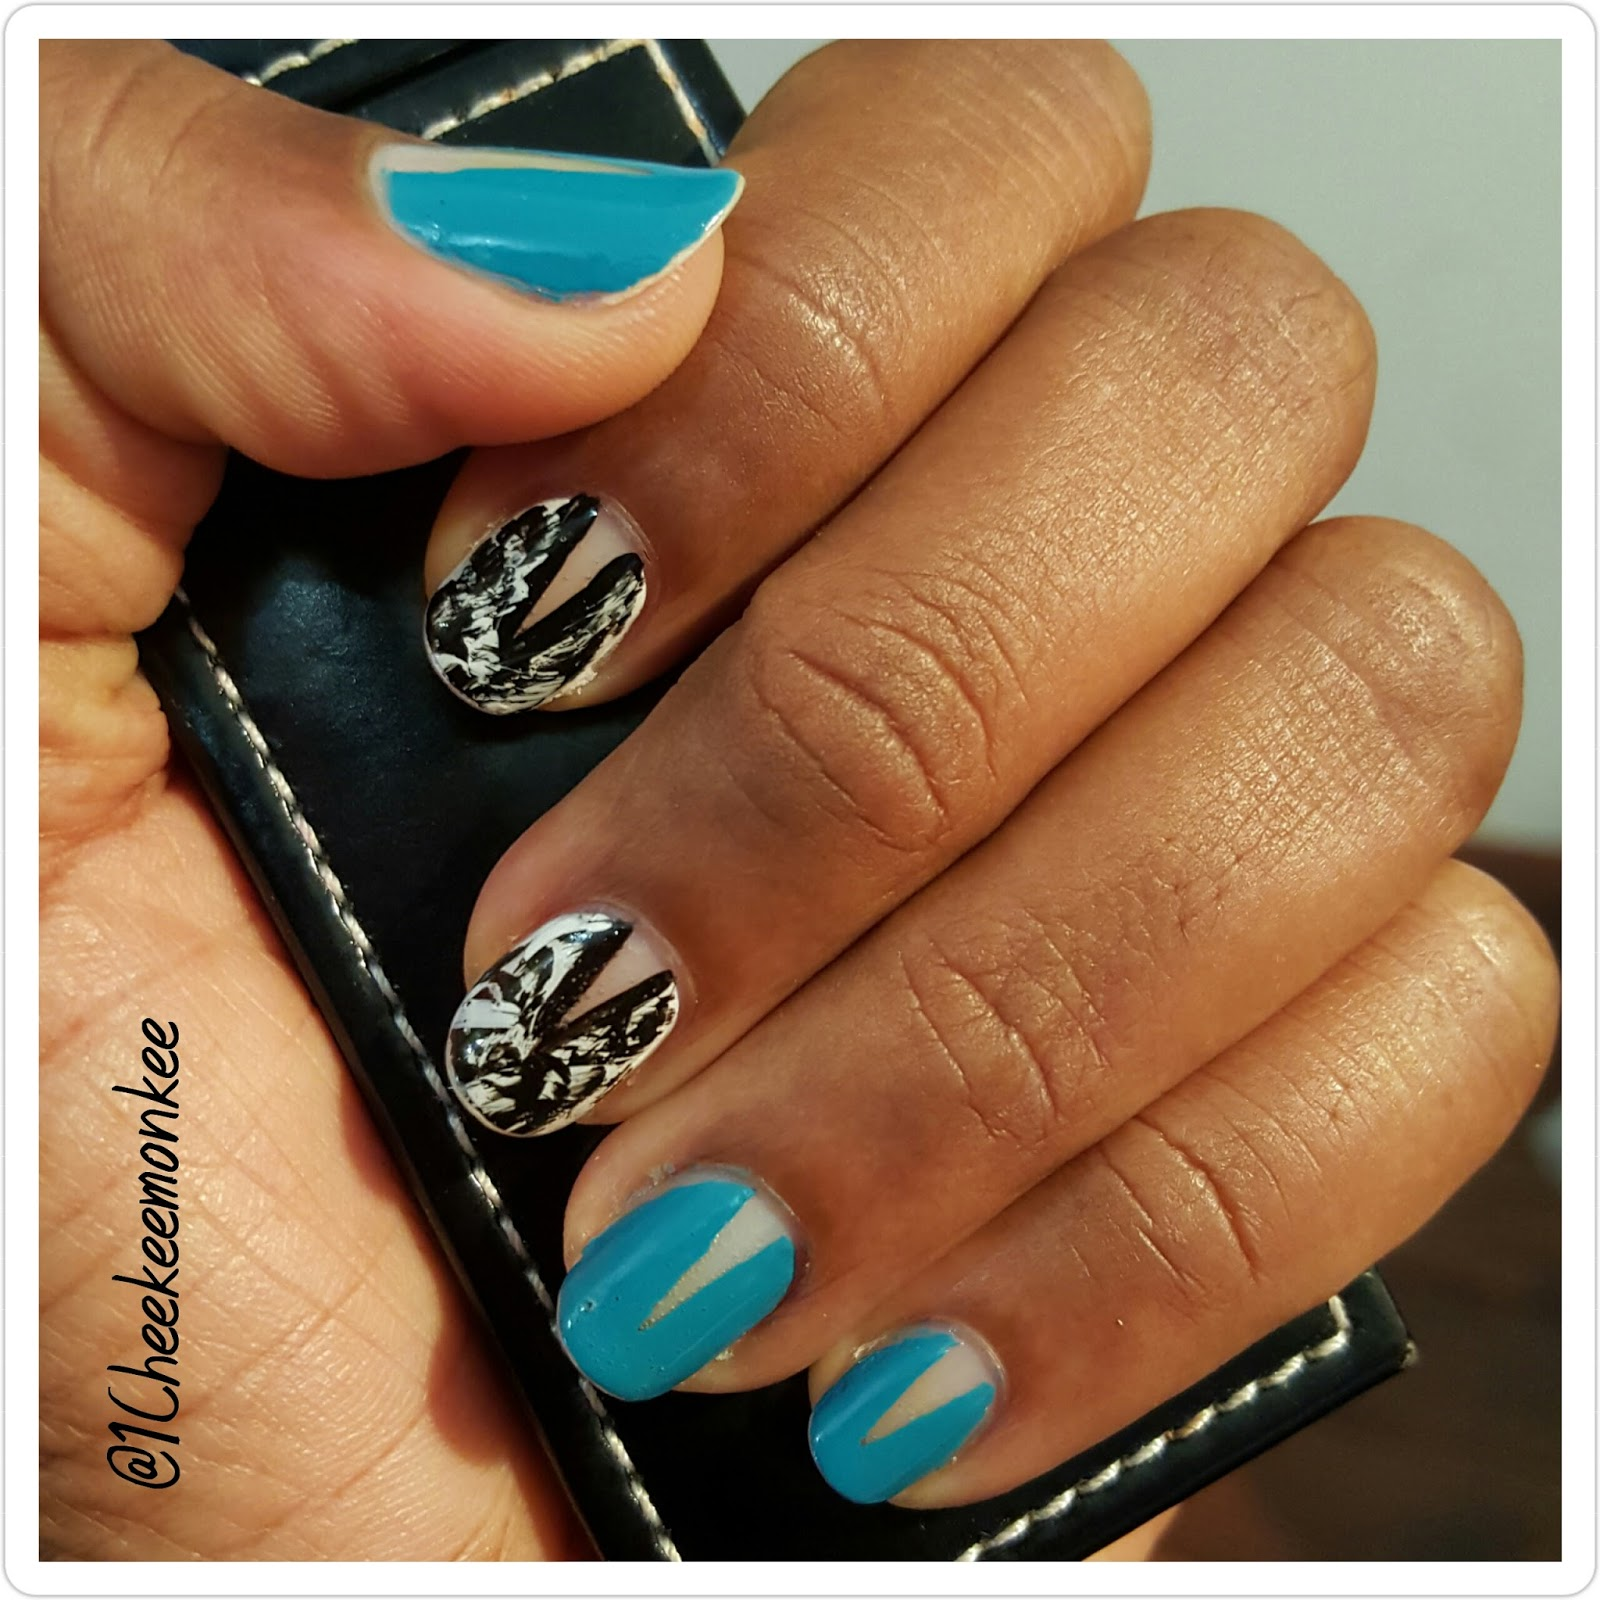 Nail Cake Blue Black Splodges Cow Print: Moo-nicure: Cow Print Dry Brush Mani